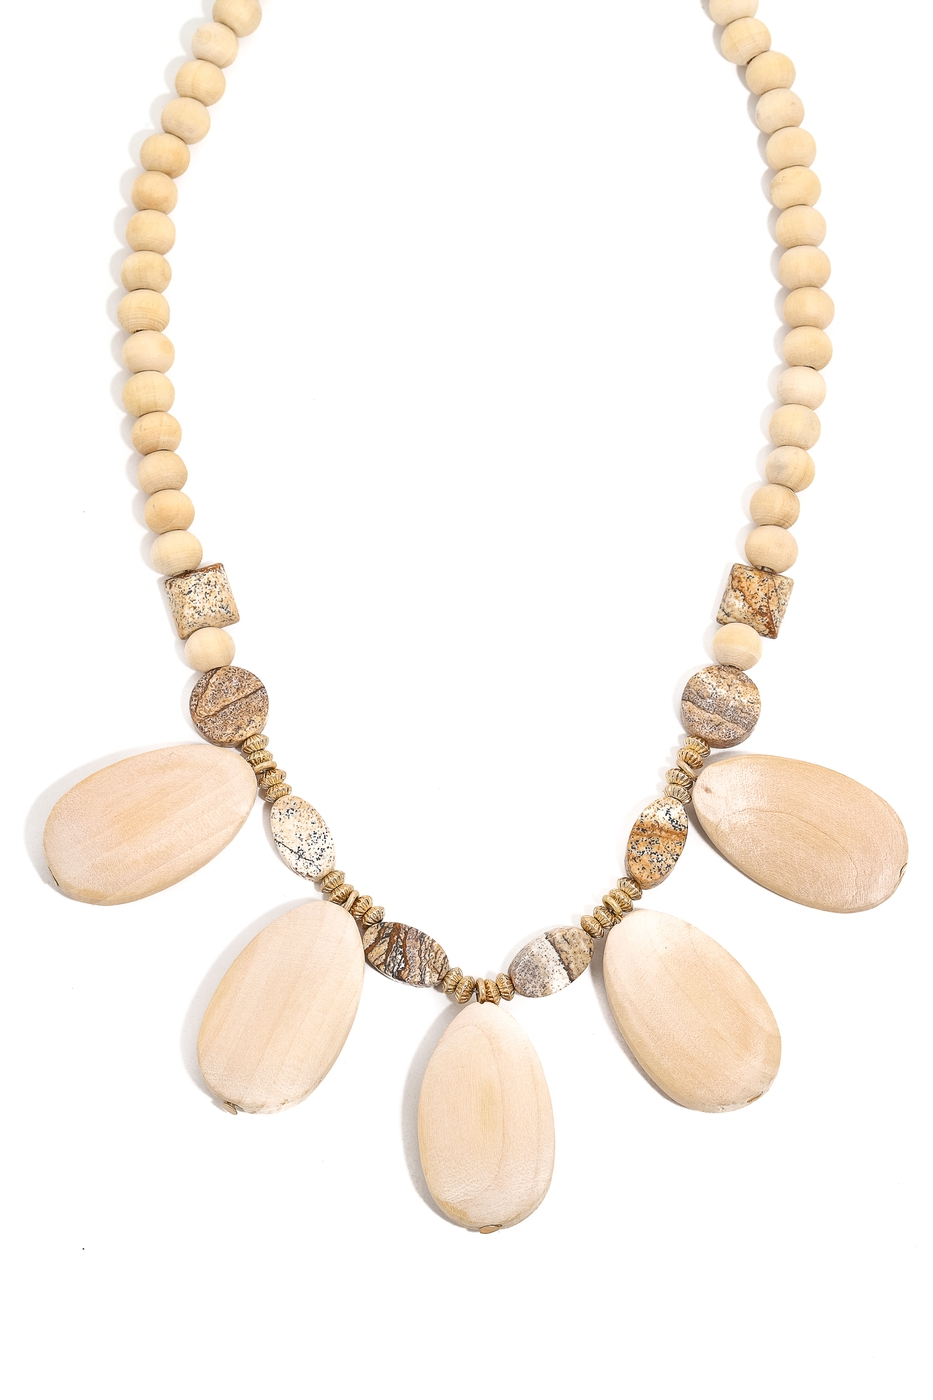 Wooden Oval Beaded Charm Necklace - orangeshine.com